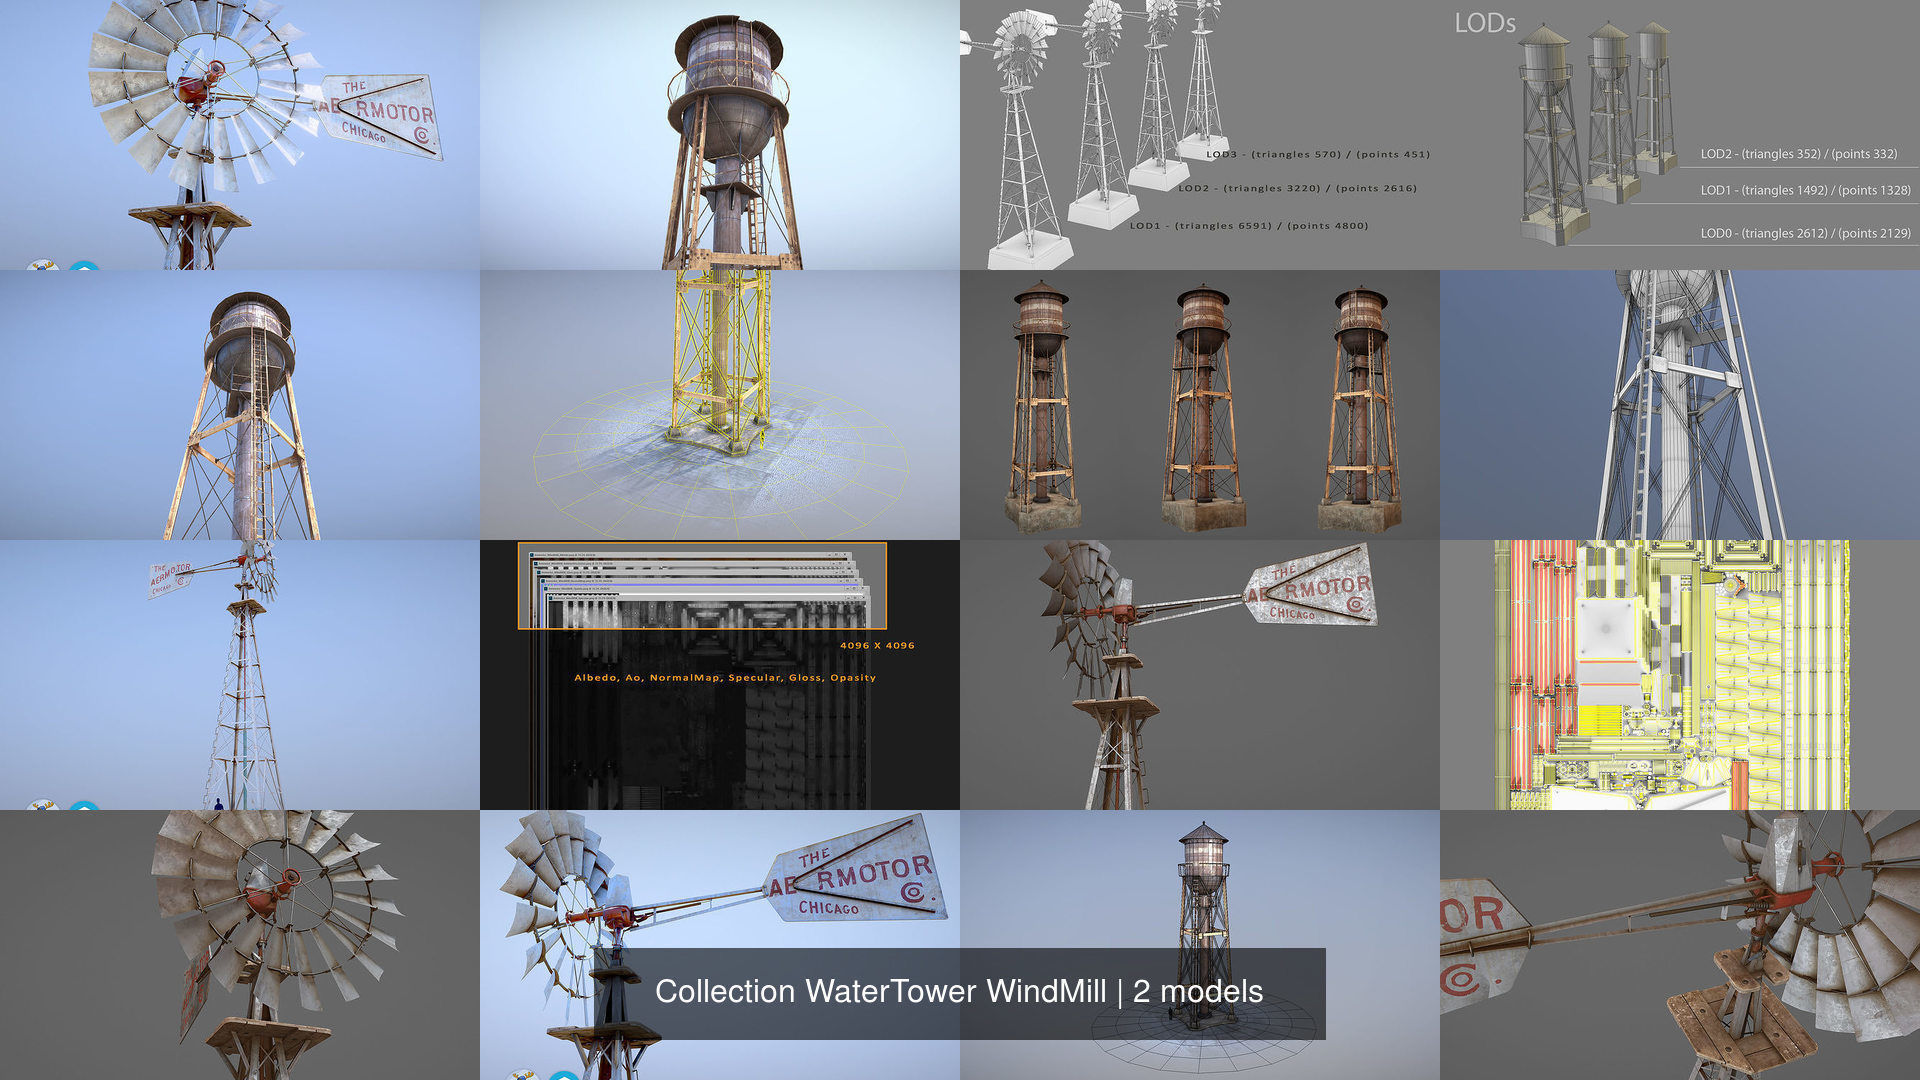 Collection WaterTower WindMill